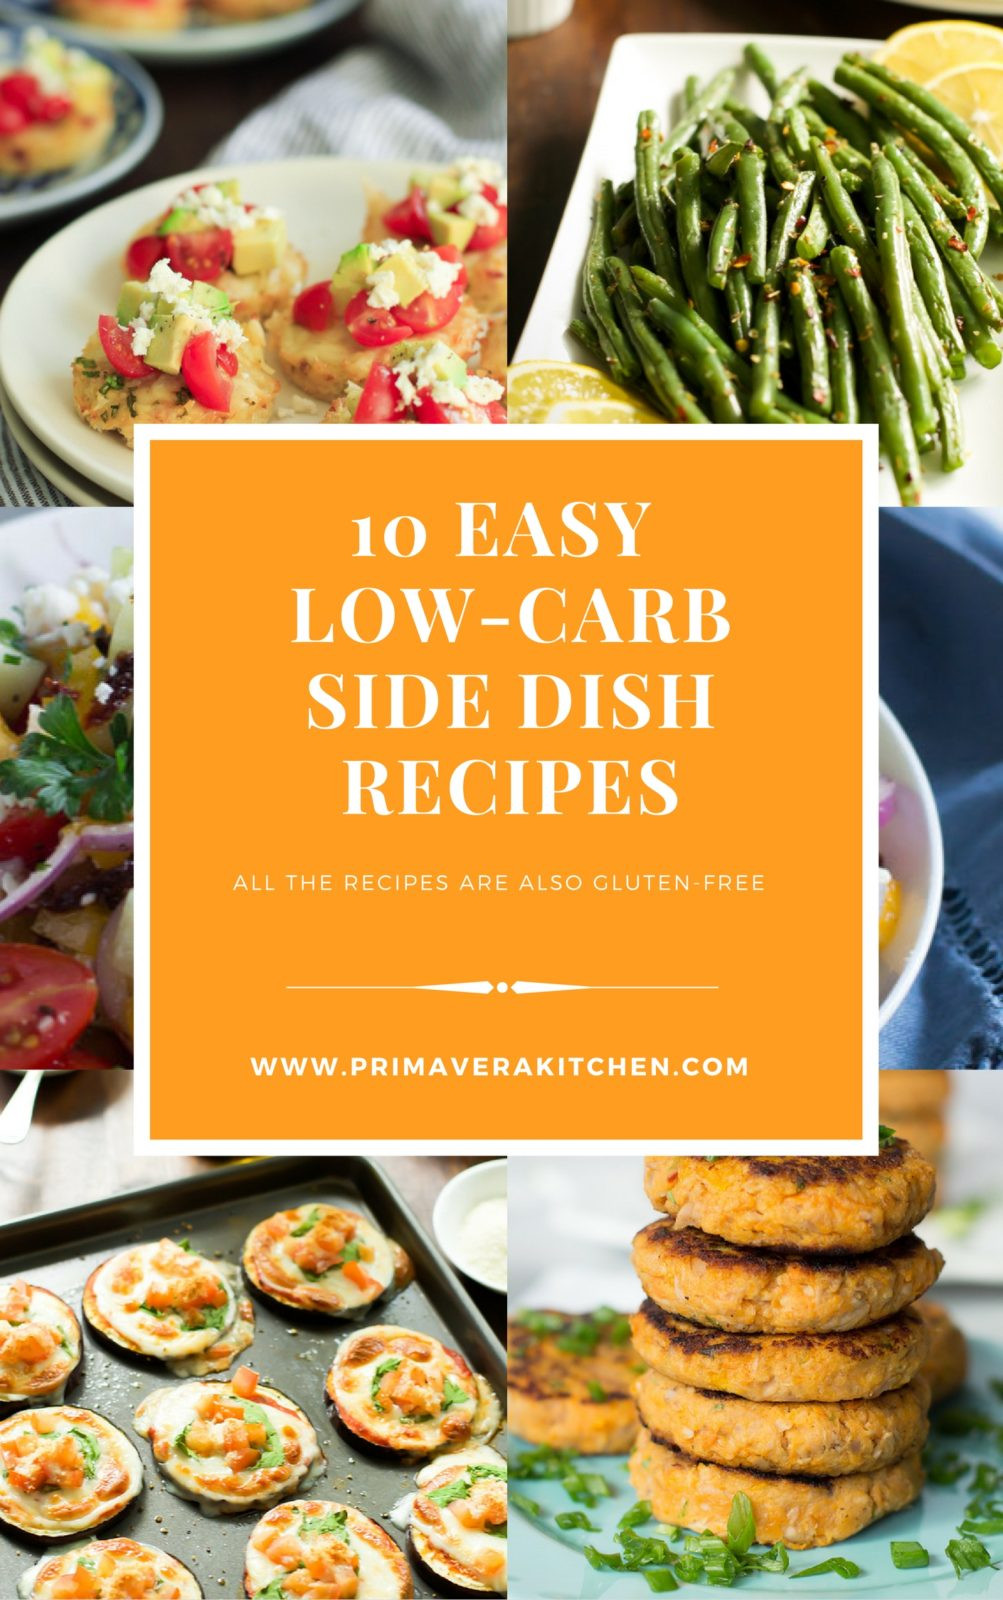 Low Carb Dinner Sides  10 Easy Low Carb Side Dish Recipes Primavera Kitchen